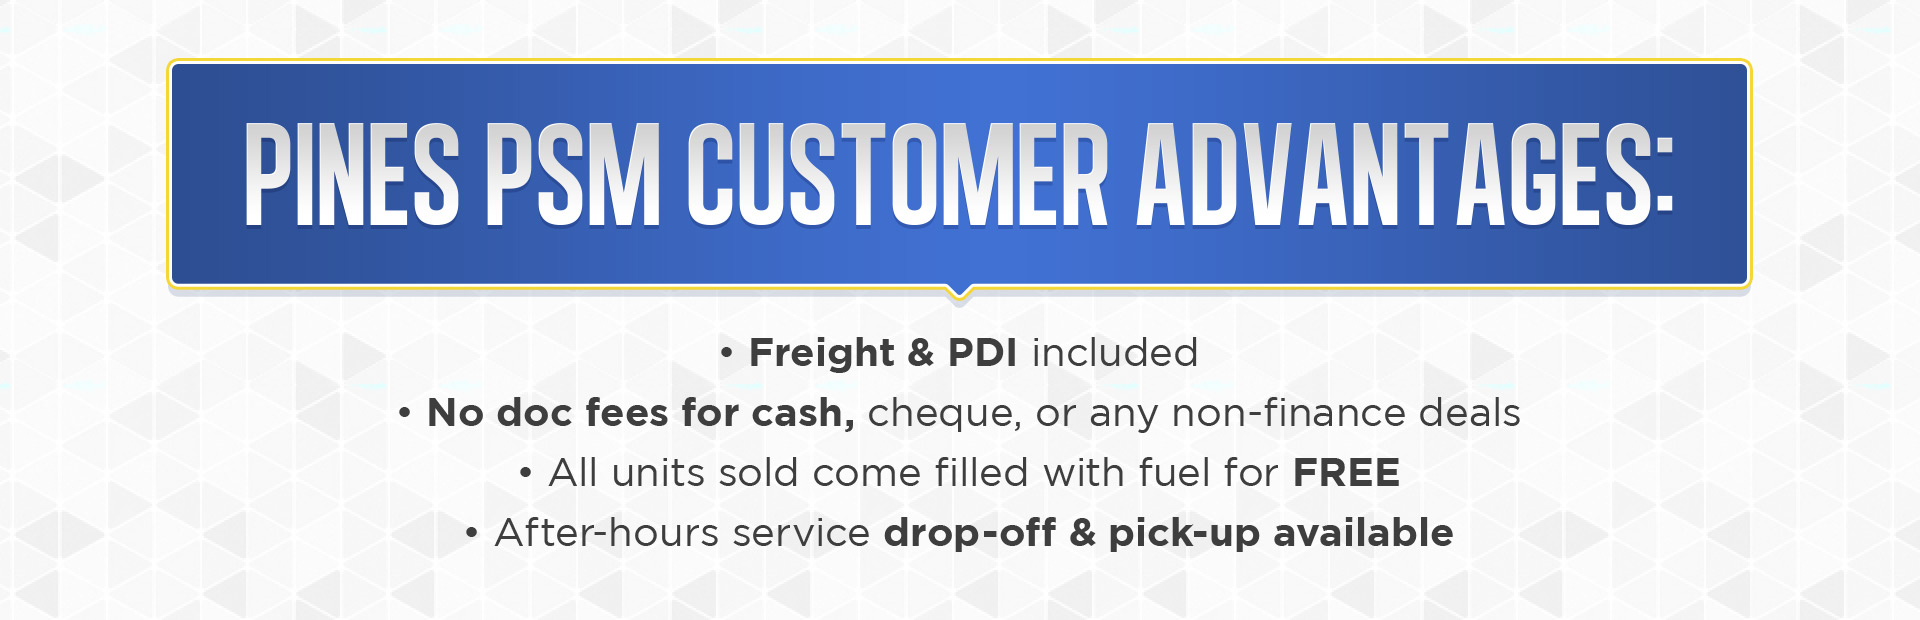 Pines PSM Customer Advantages: Freight and PDI are included. No doc fees for cash, cheque, or any non-finance deals. All units sold come filled with fuel for FREE! After-hours service drop-off and pic